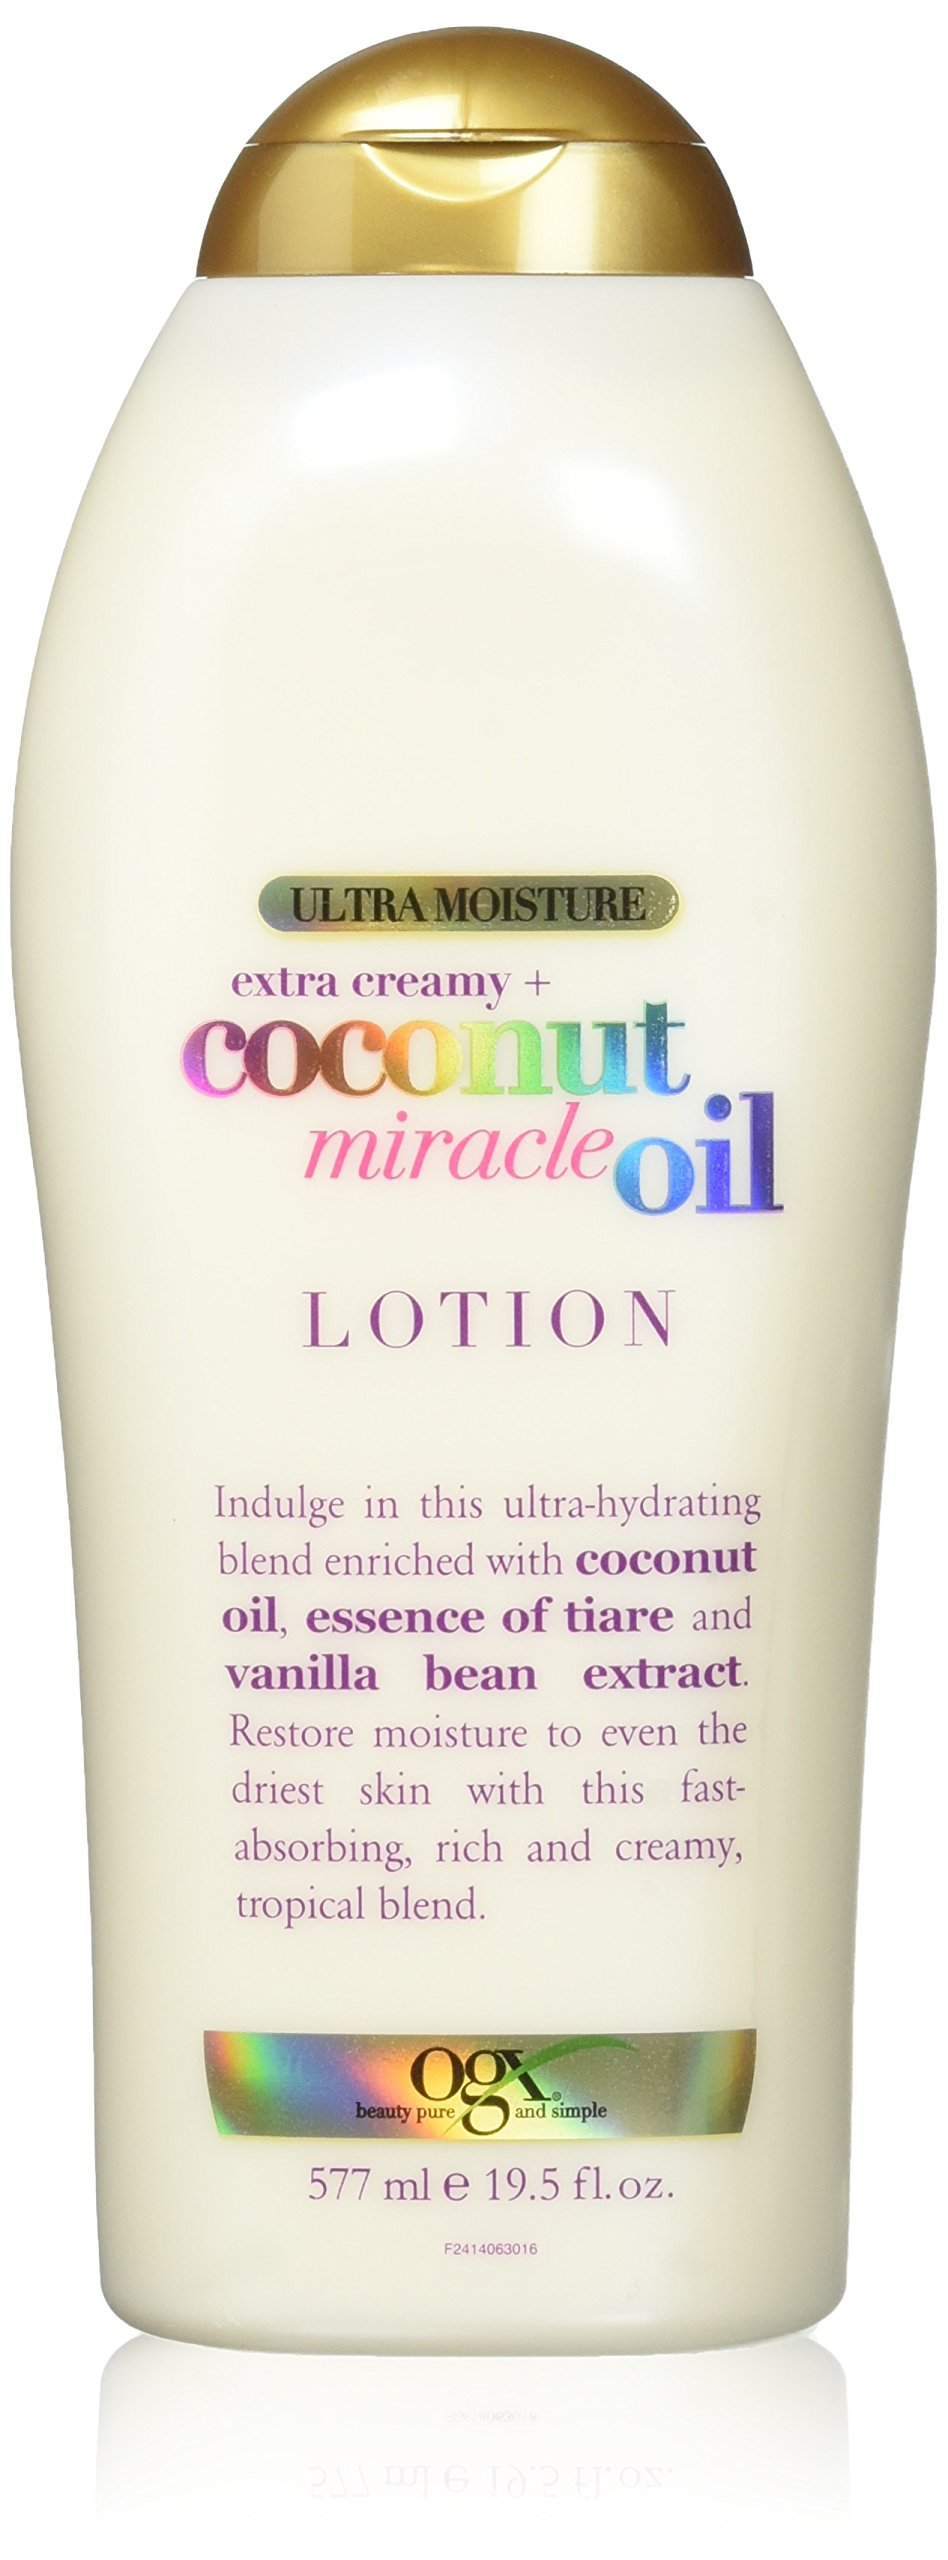 OGX Extra Creamy + Coconut Miracle Oil Ultra Moisture Lotion, 19.5 Ounce